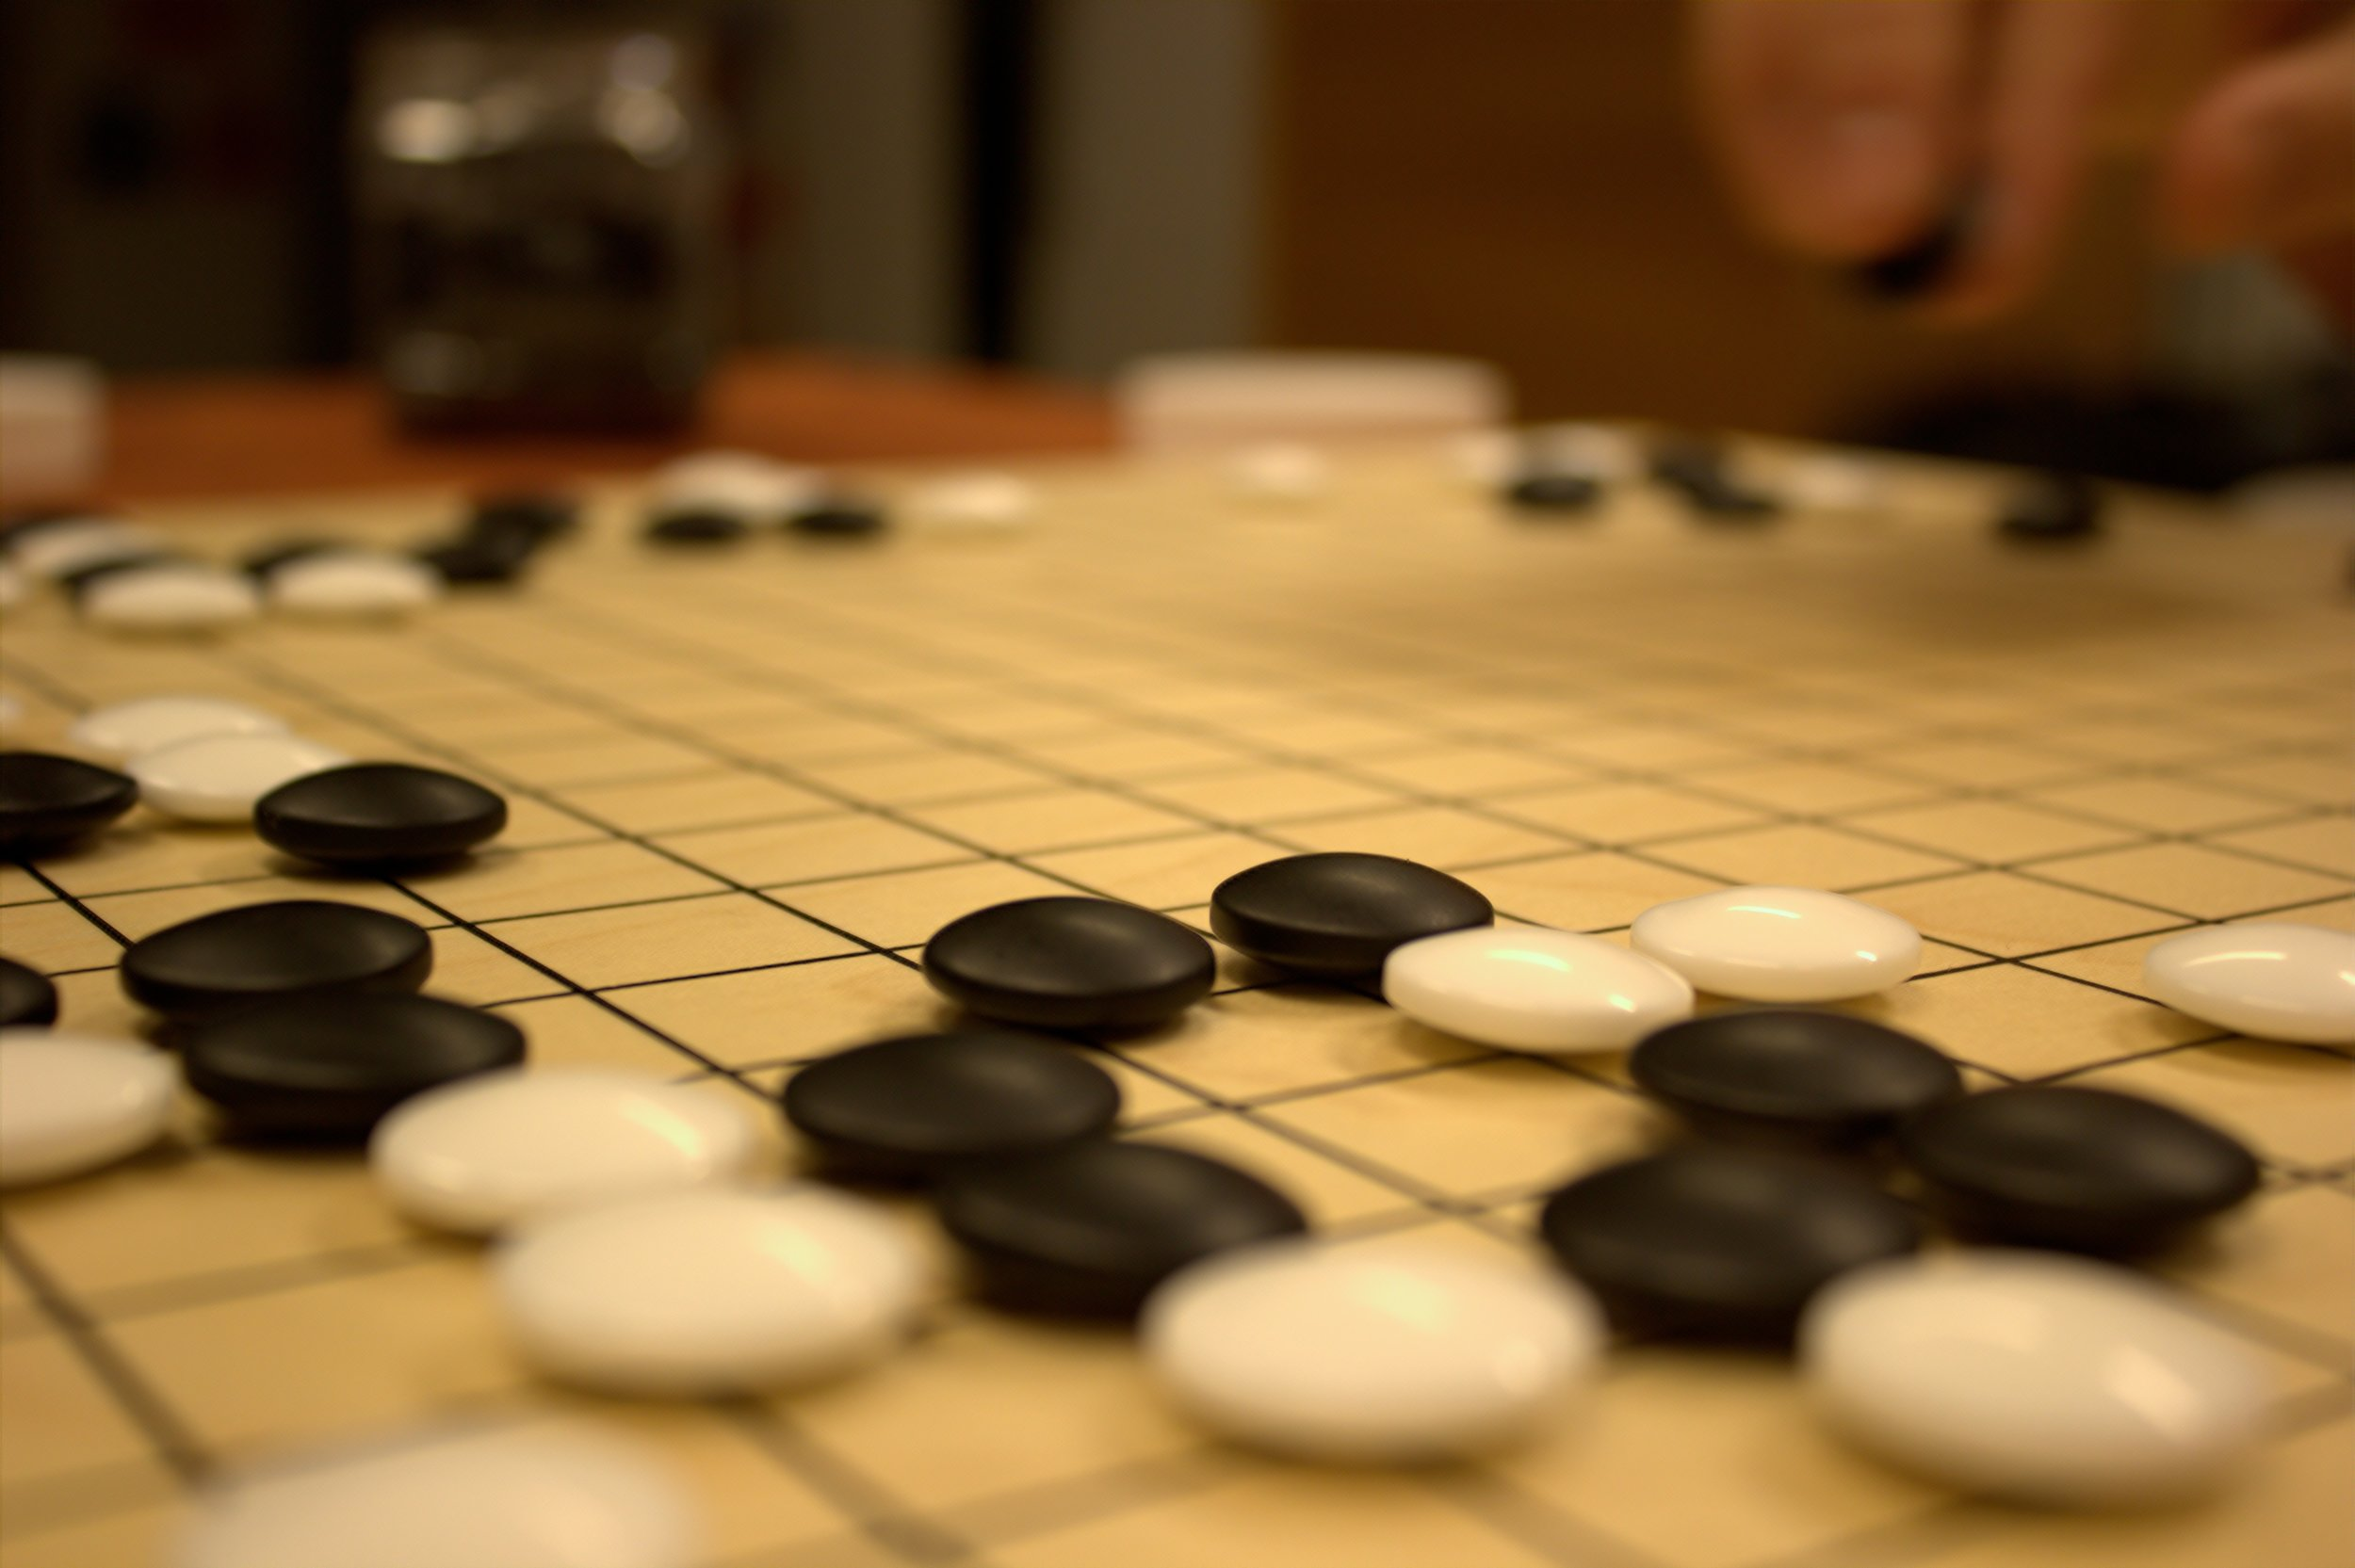 """Game of Go""  by  Jaro Larnos  is licensed under  CC by 2.0 ."